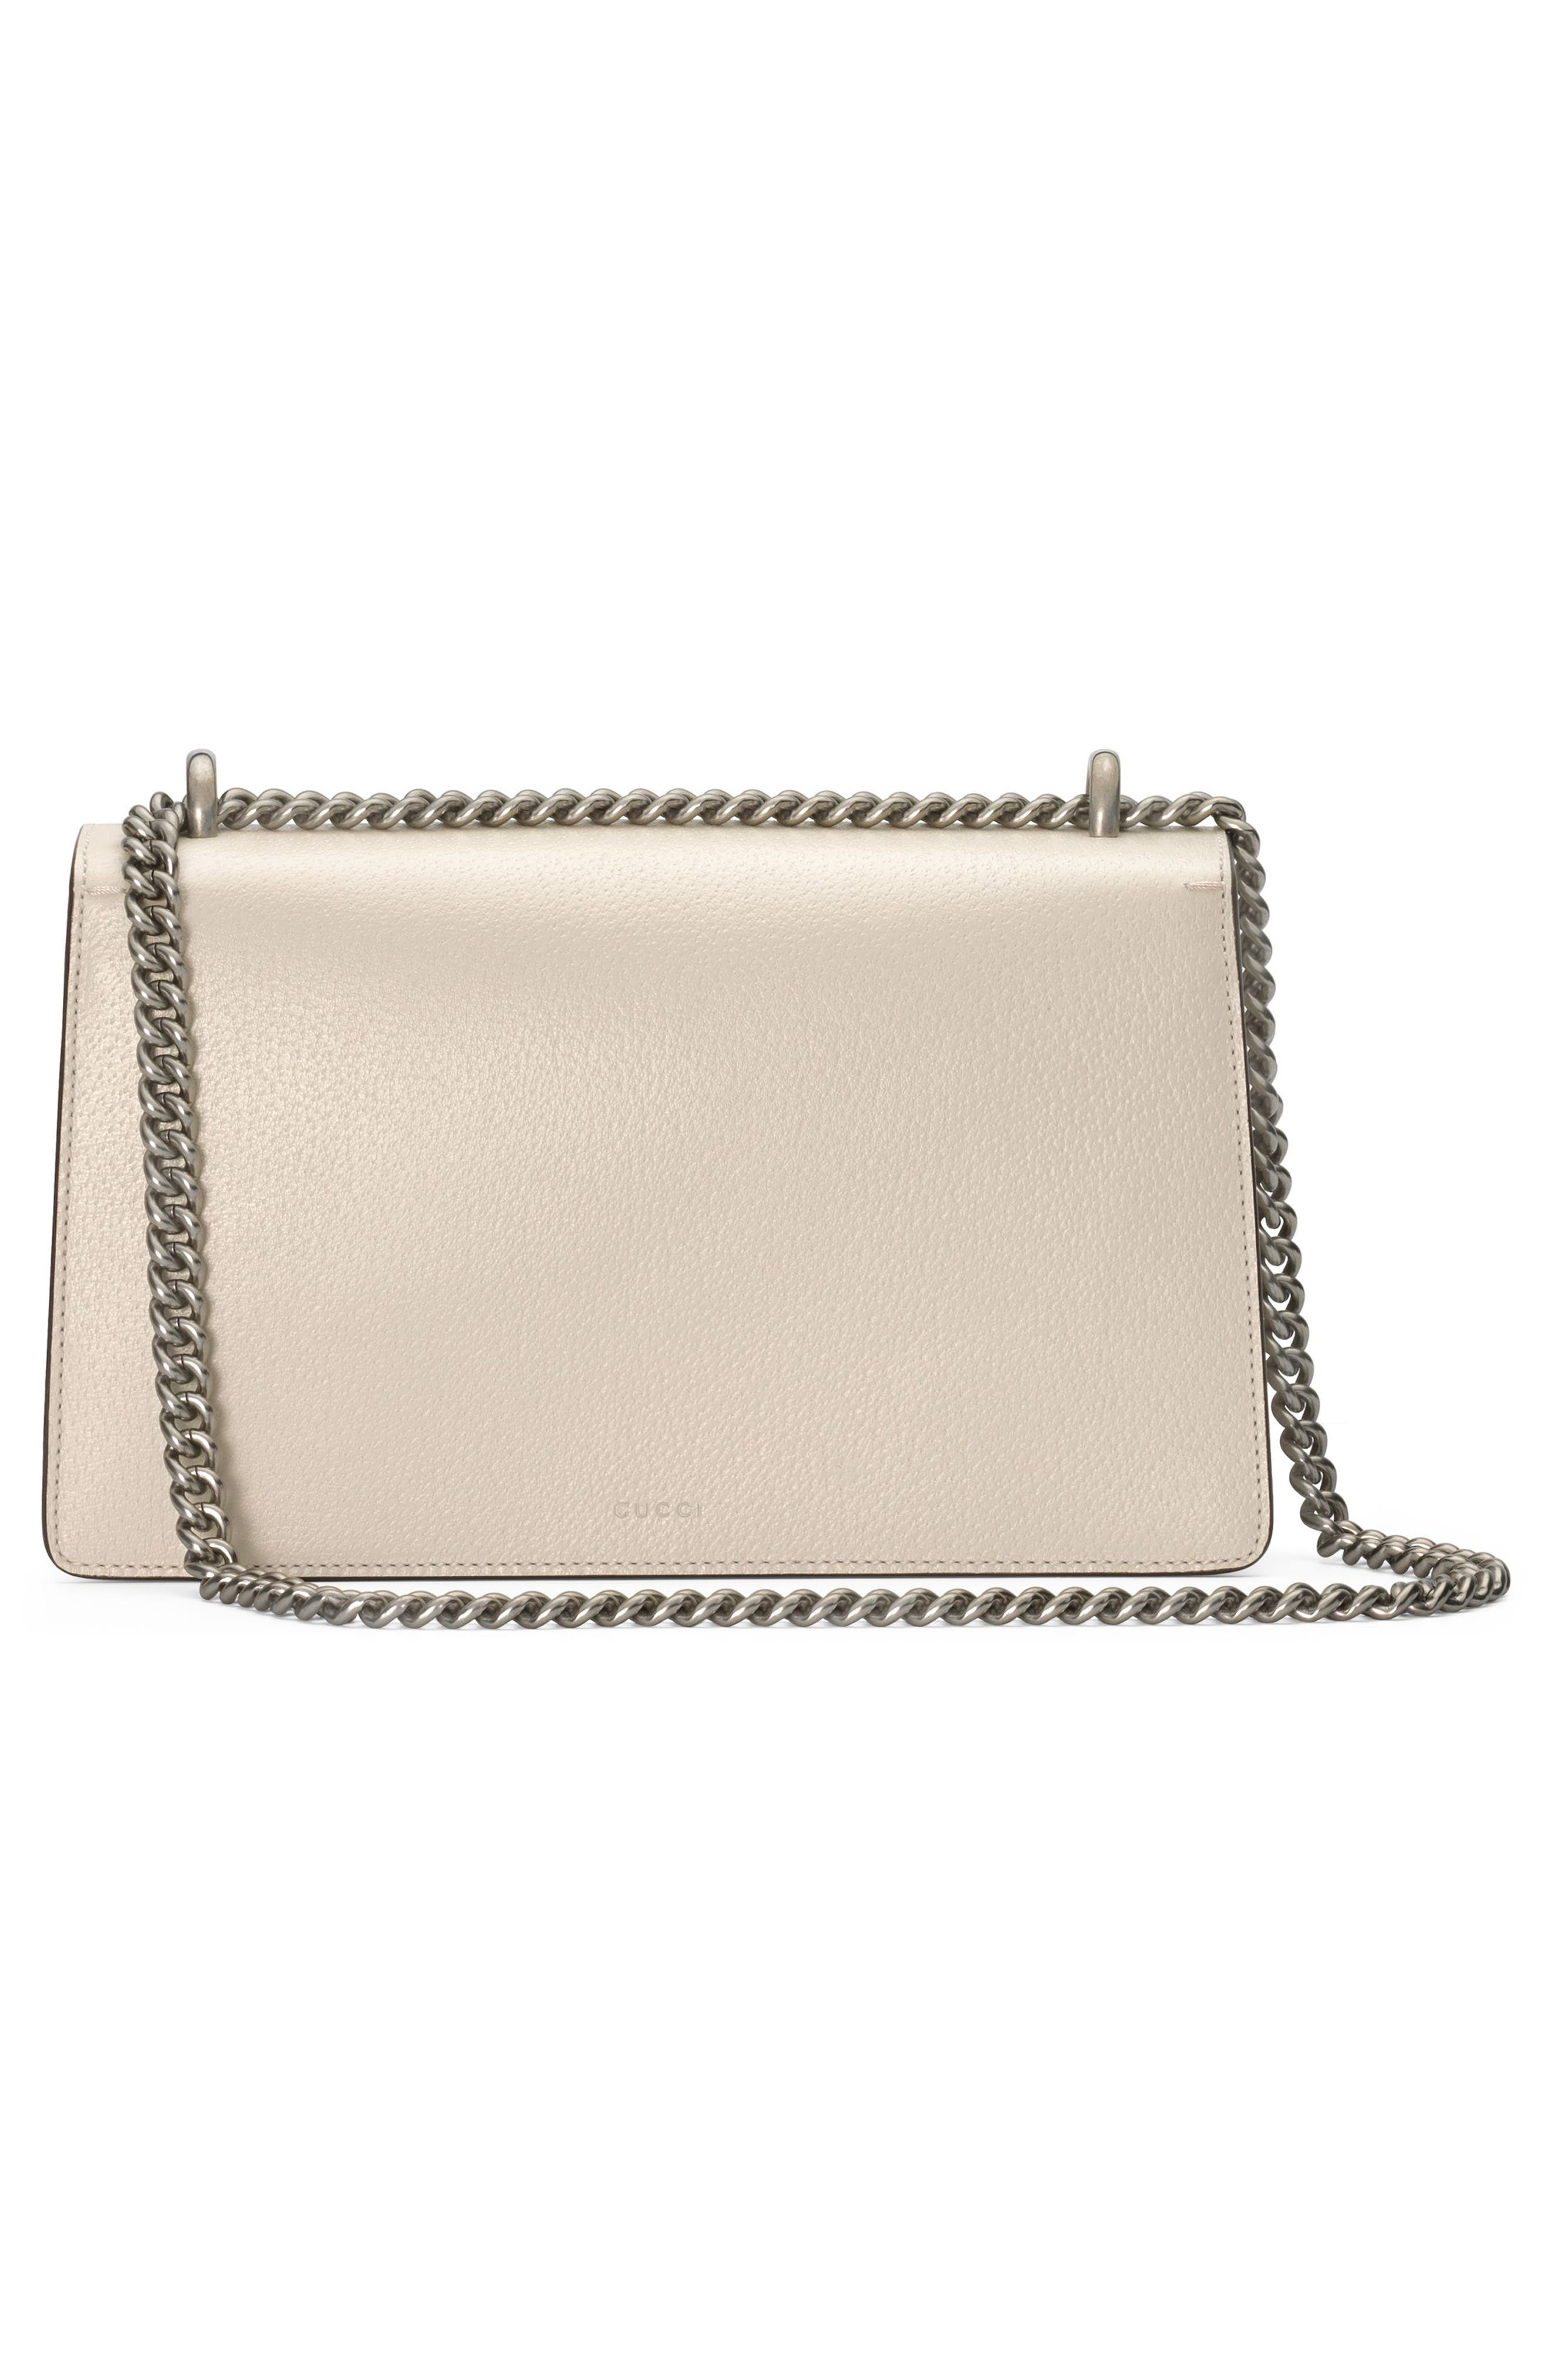 Small Dionysus Leather Shoulder Bag,                             Alternate thumbnail 2, color,                             IVORY/ BLACK DIAMOND